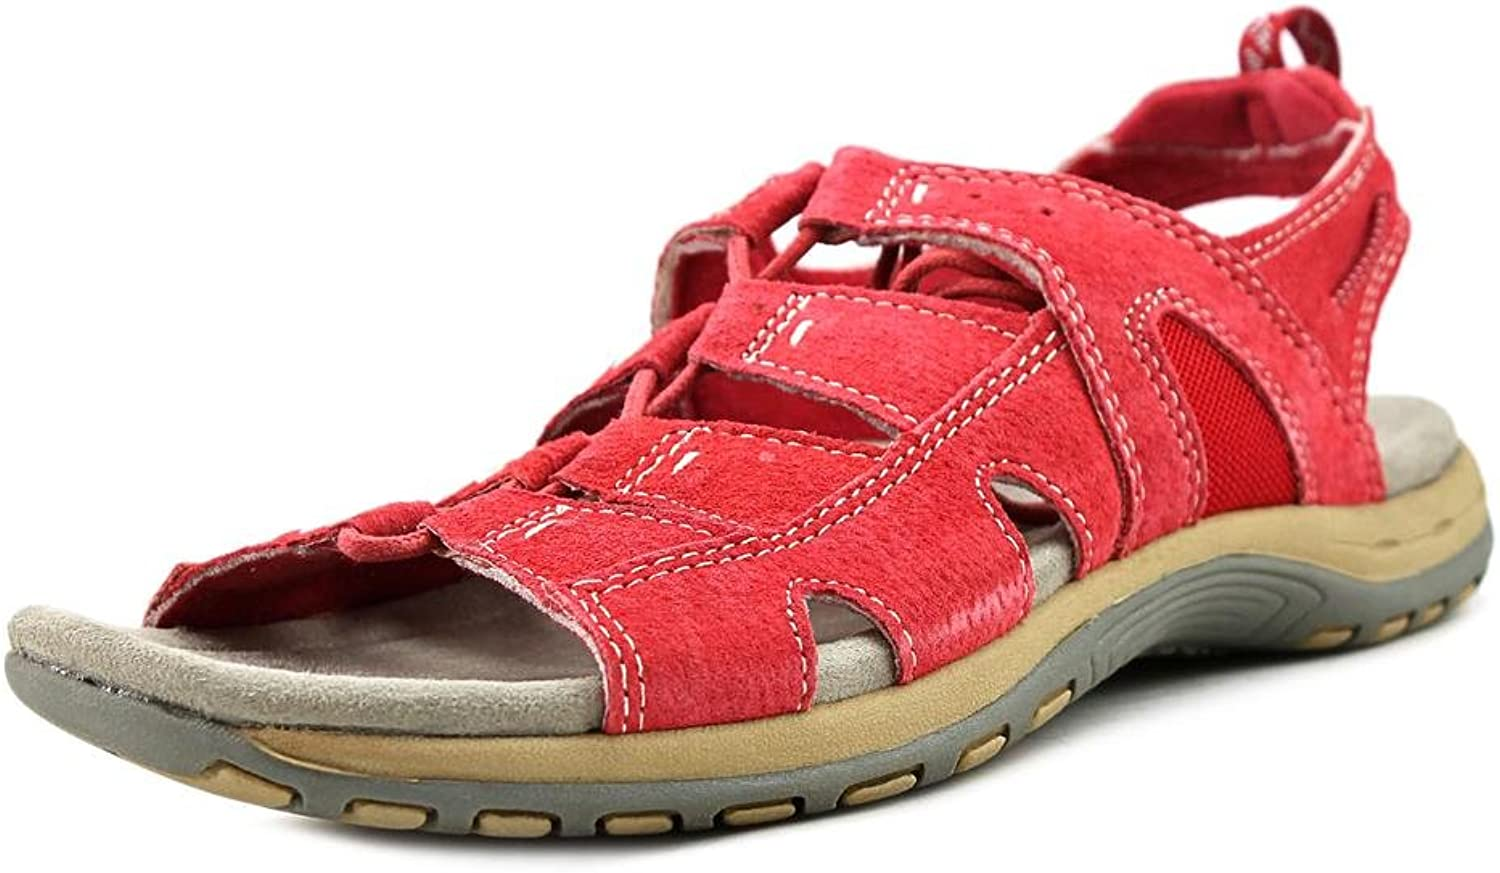 EARTH ORIGINS Womens Sassy Leather Open Toe Casual Slingback Sandals